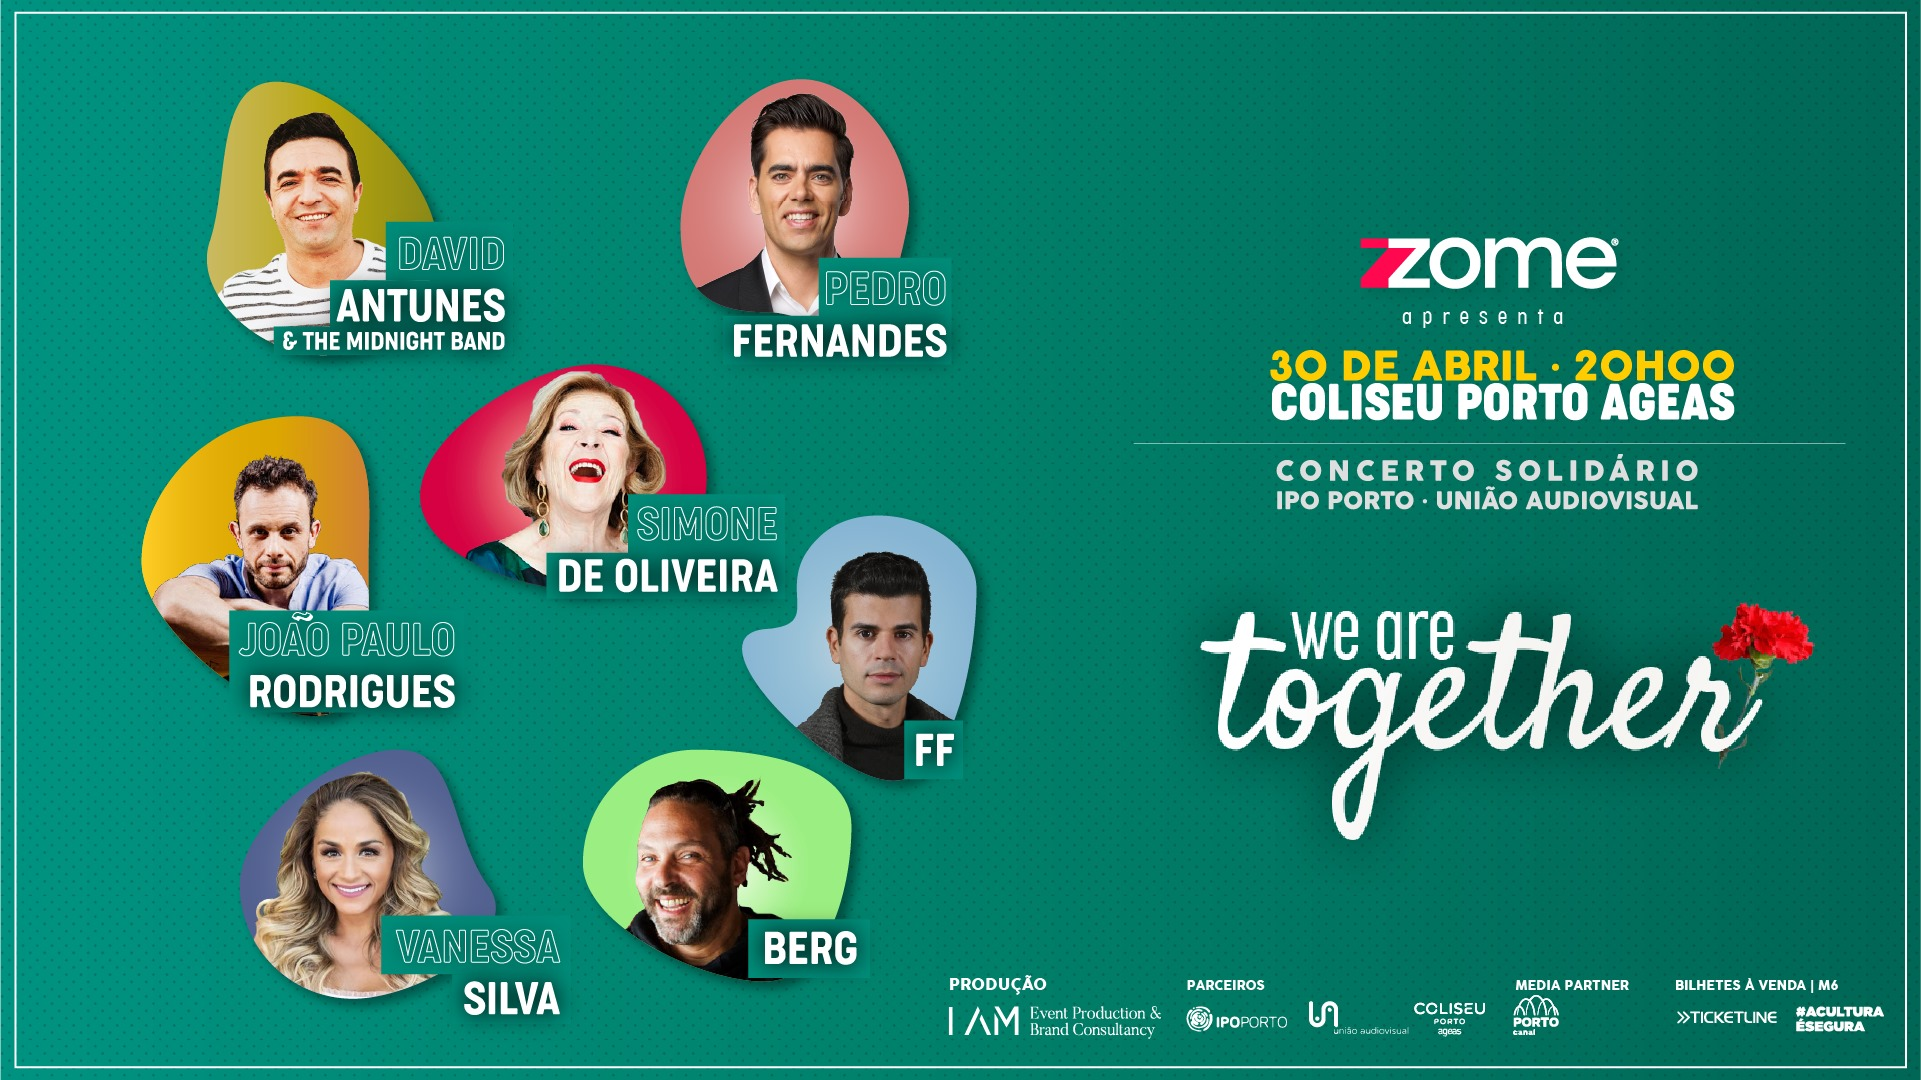 Zome apresenta We ARE Together